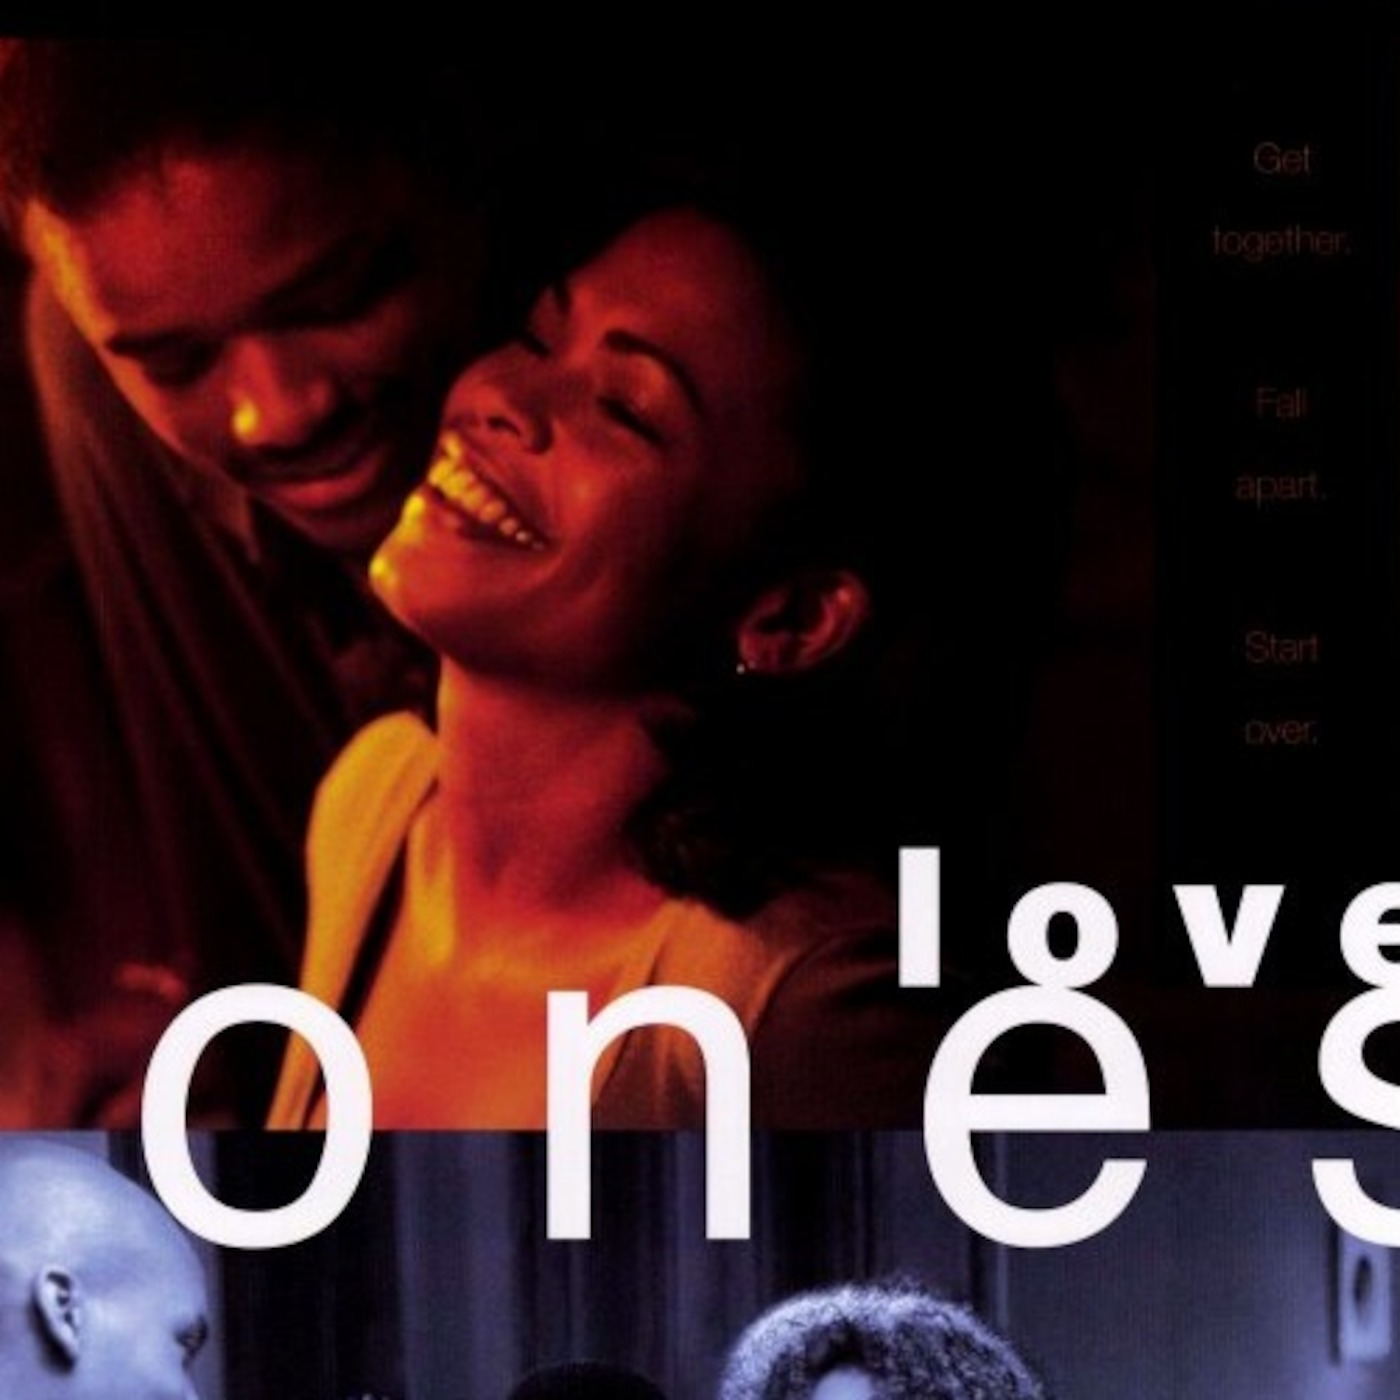 love jones review Love jones the musical comes to the fox theatre with shows oct 29-30 starring r&b singers musiq soulchild, chrisette michele, marsha ambrosius, dave hollister, raheem devaughn and rapper mc lyte.